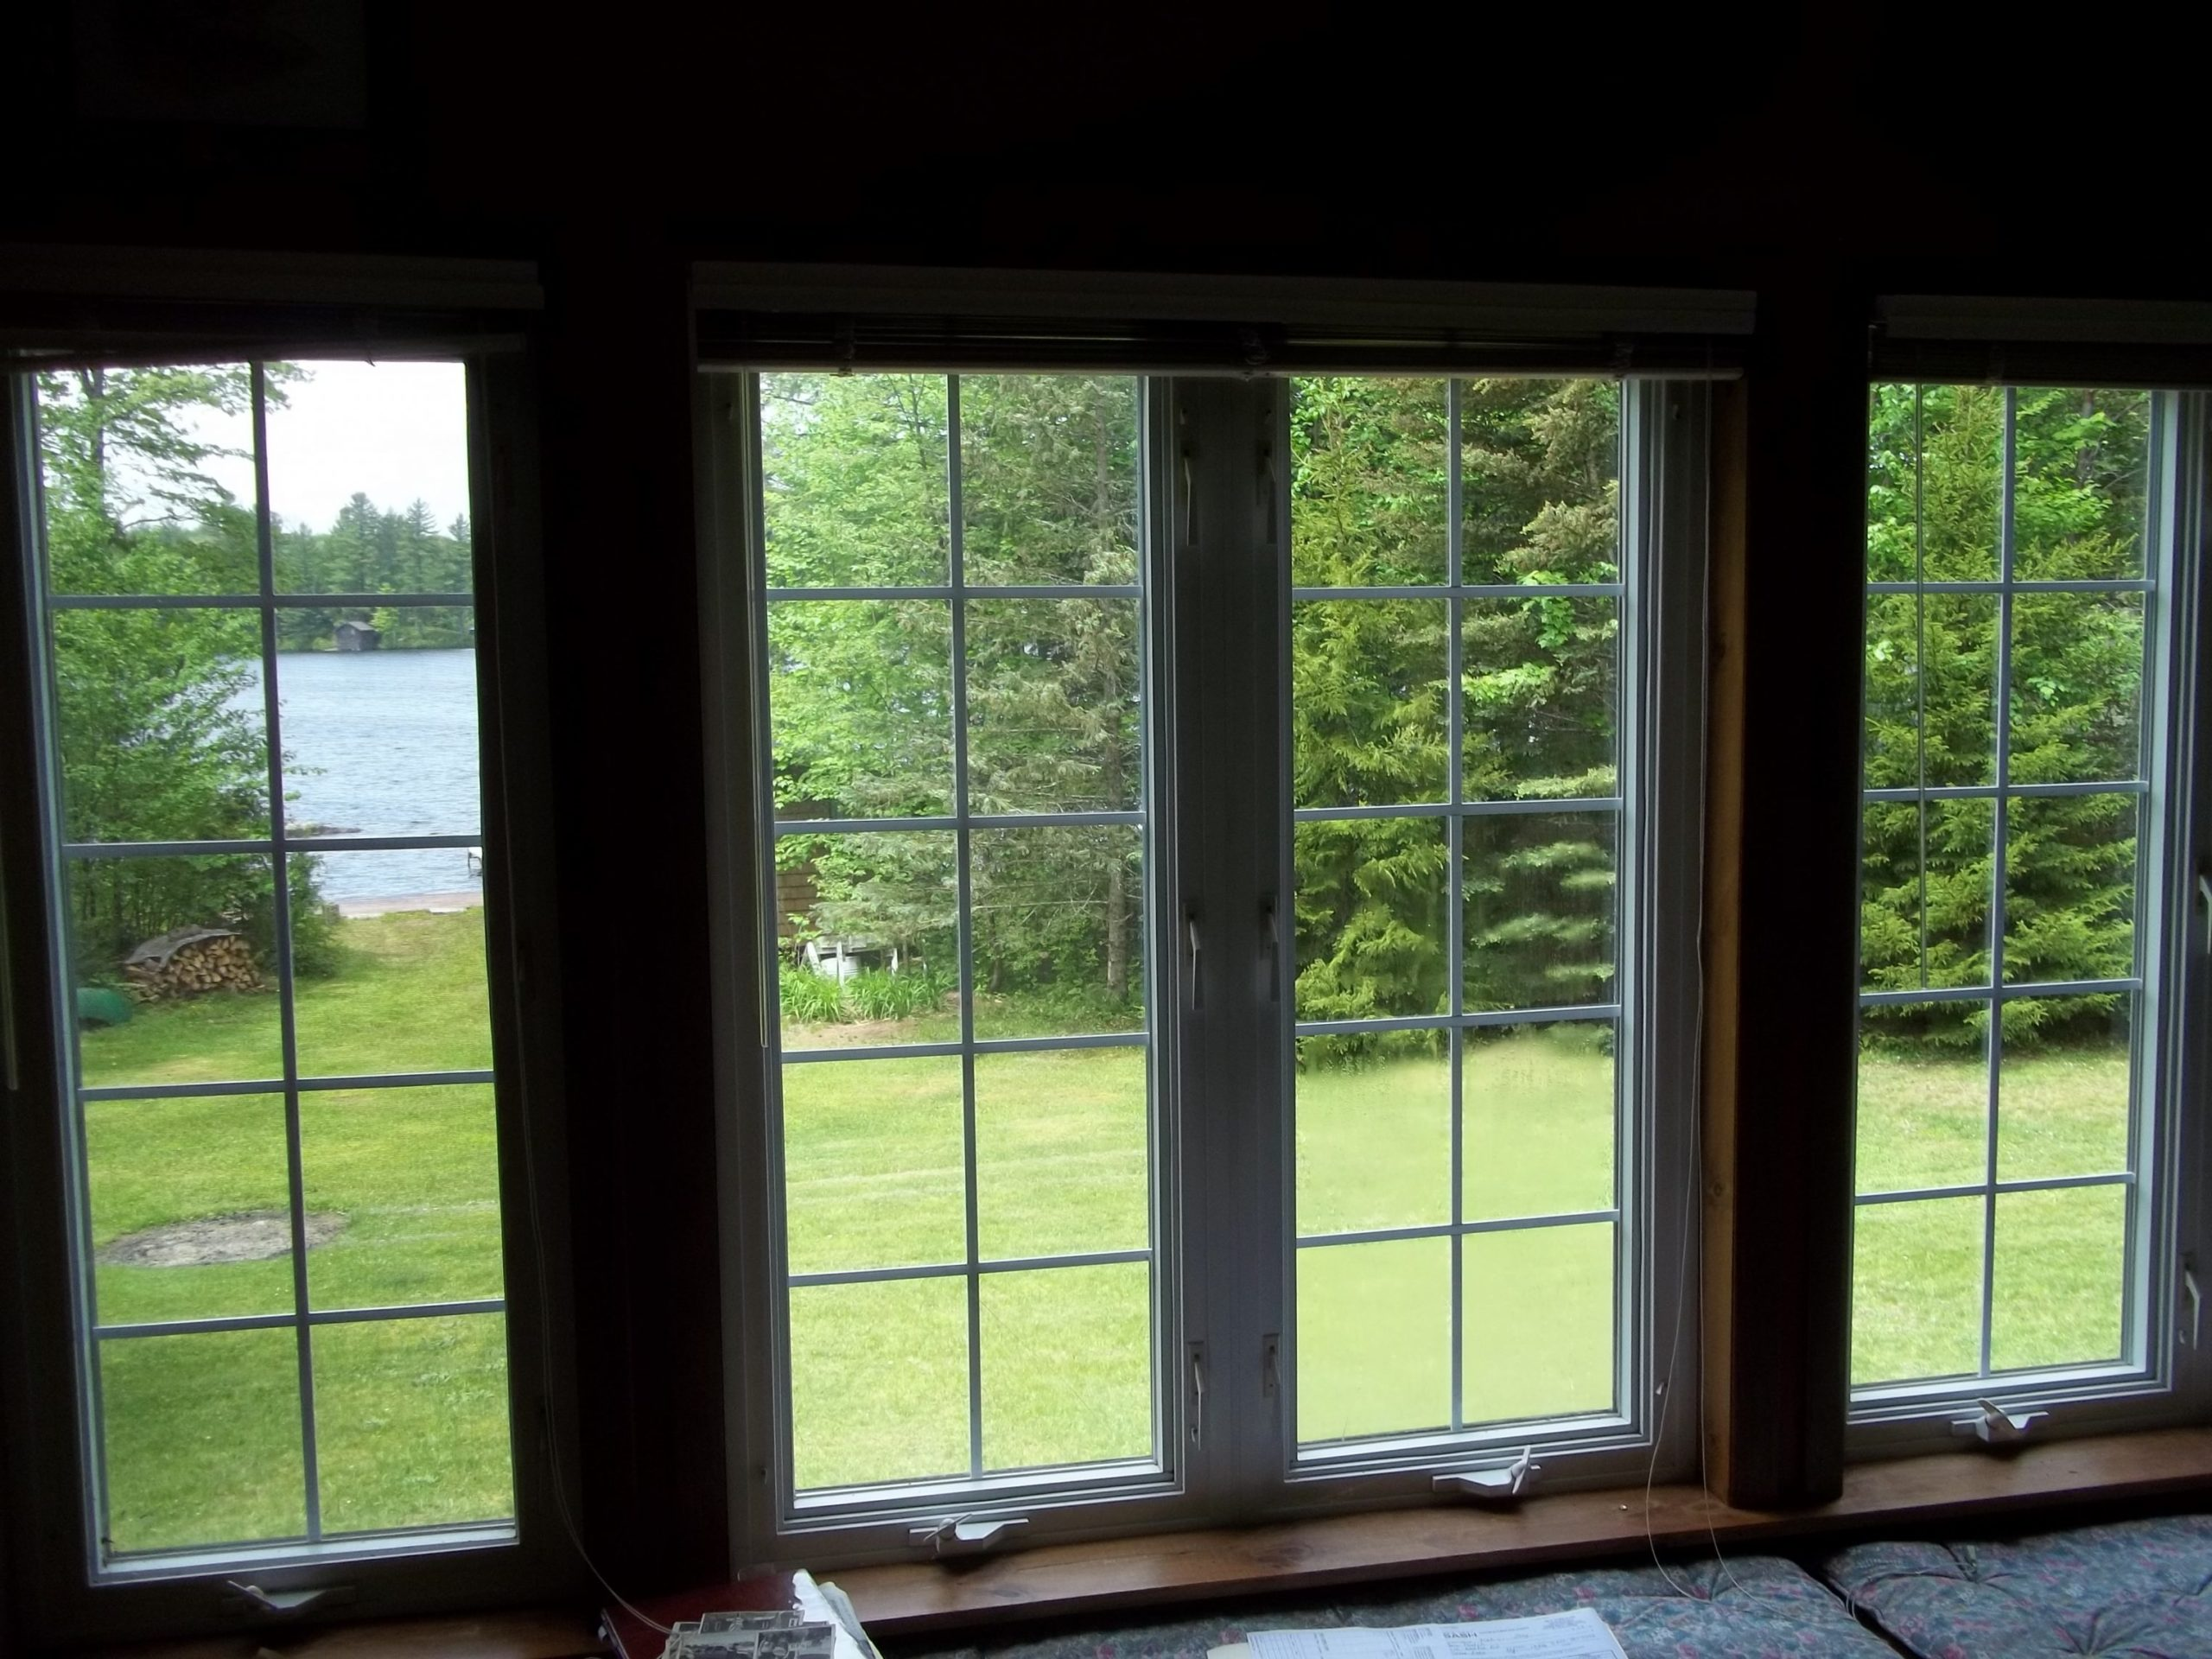 Very Satisfied with Window Install – Otter Lake, NY